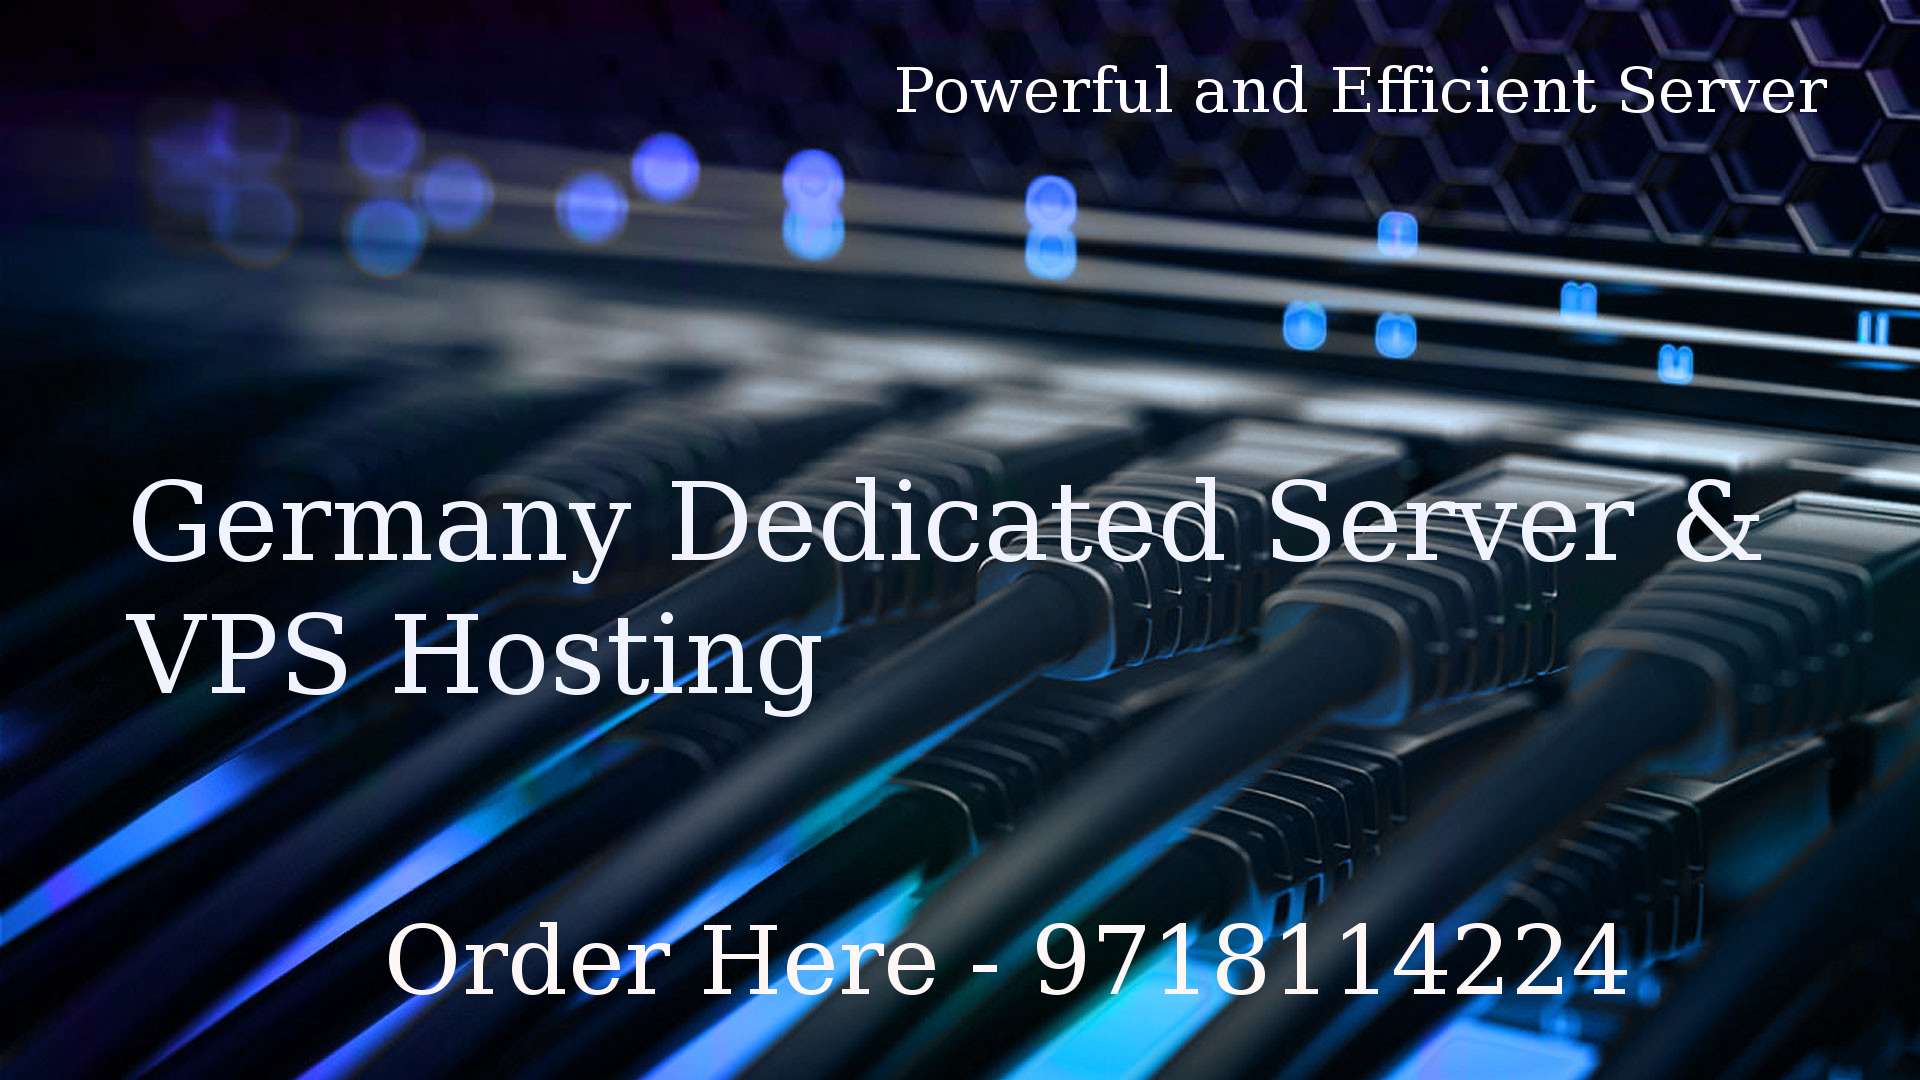 Germany Dedicated Server and VPS Hosting